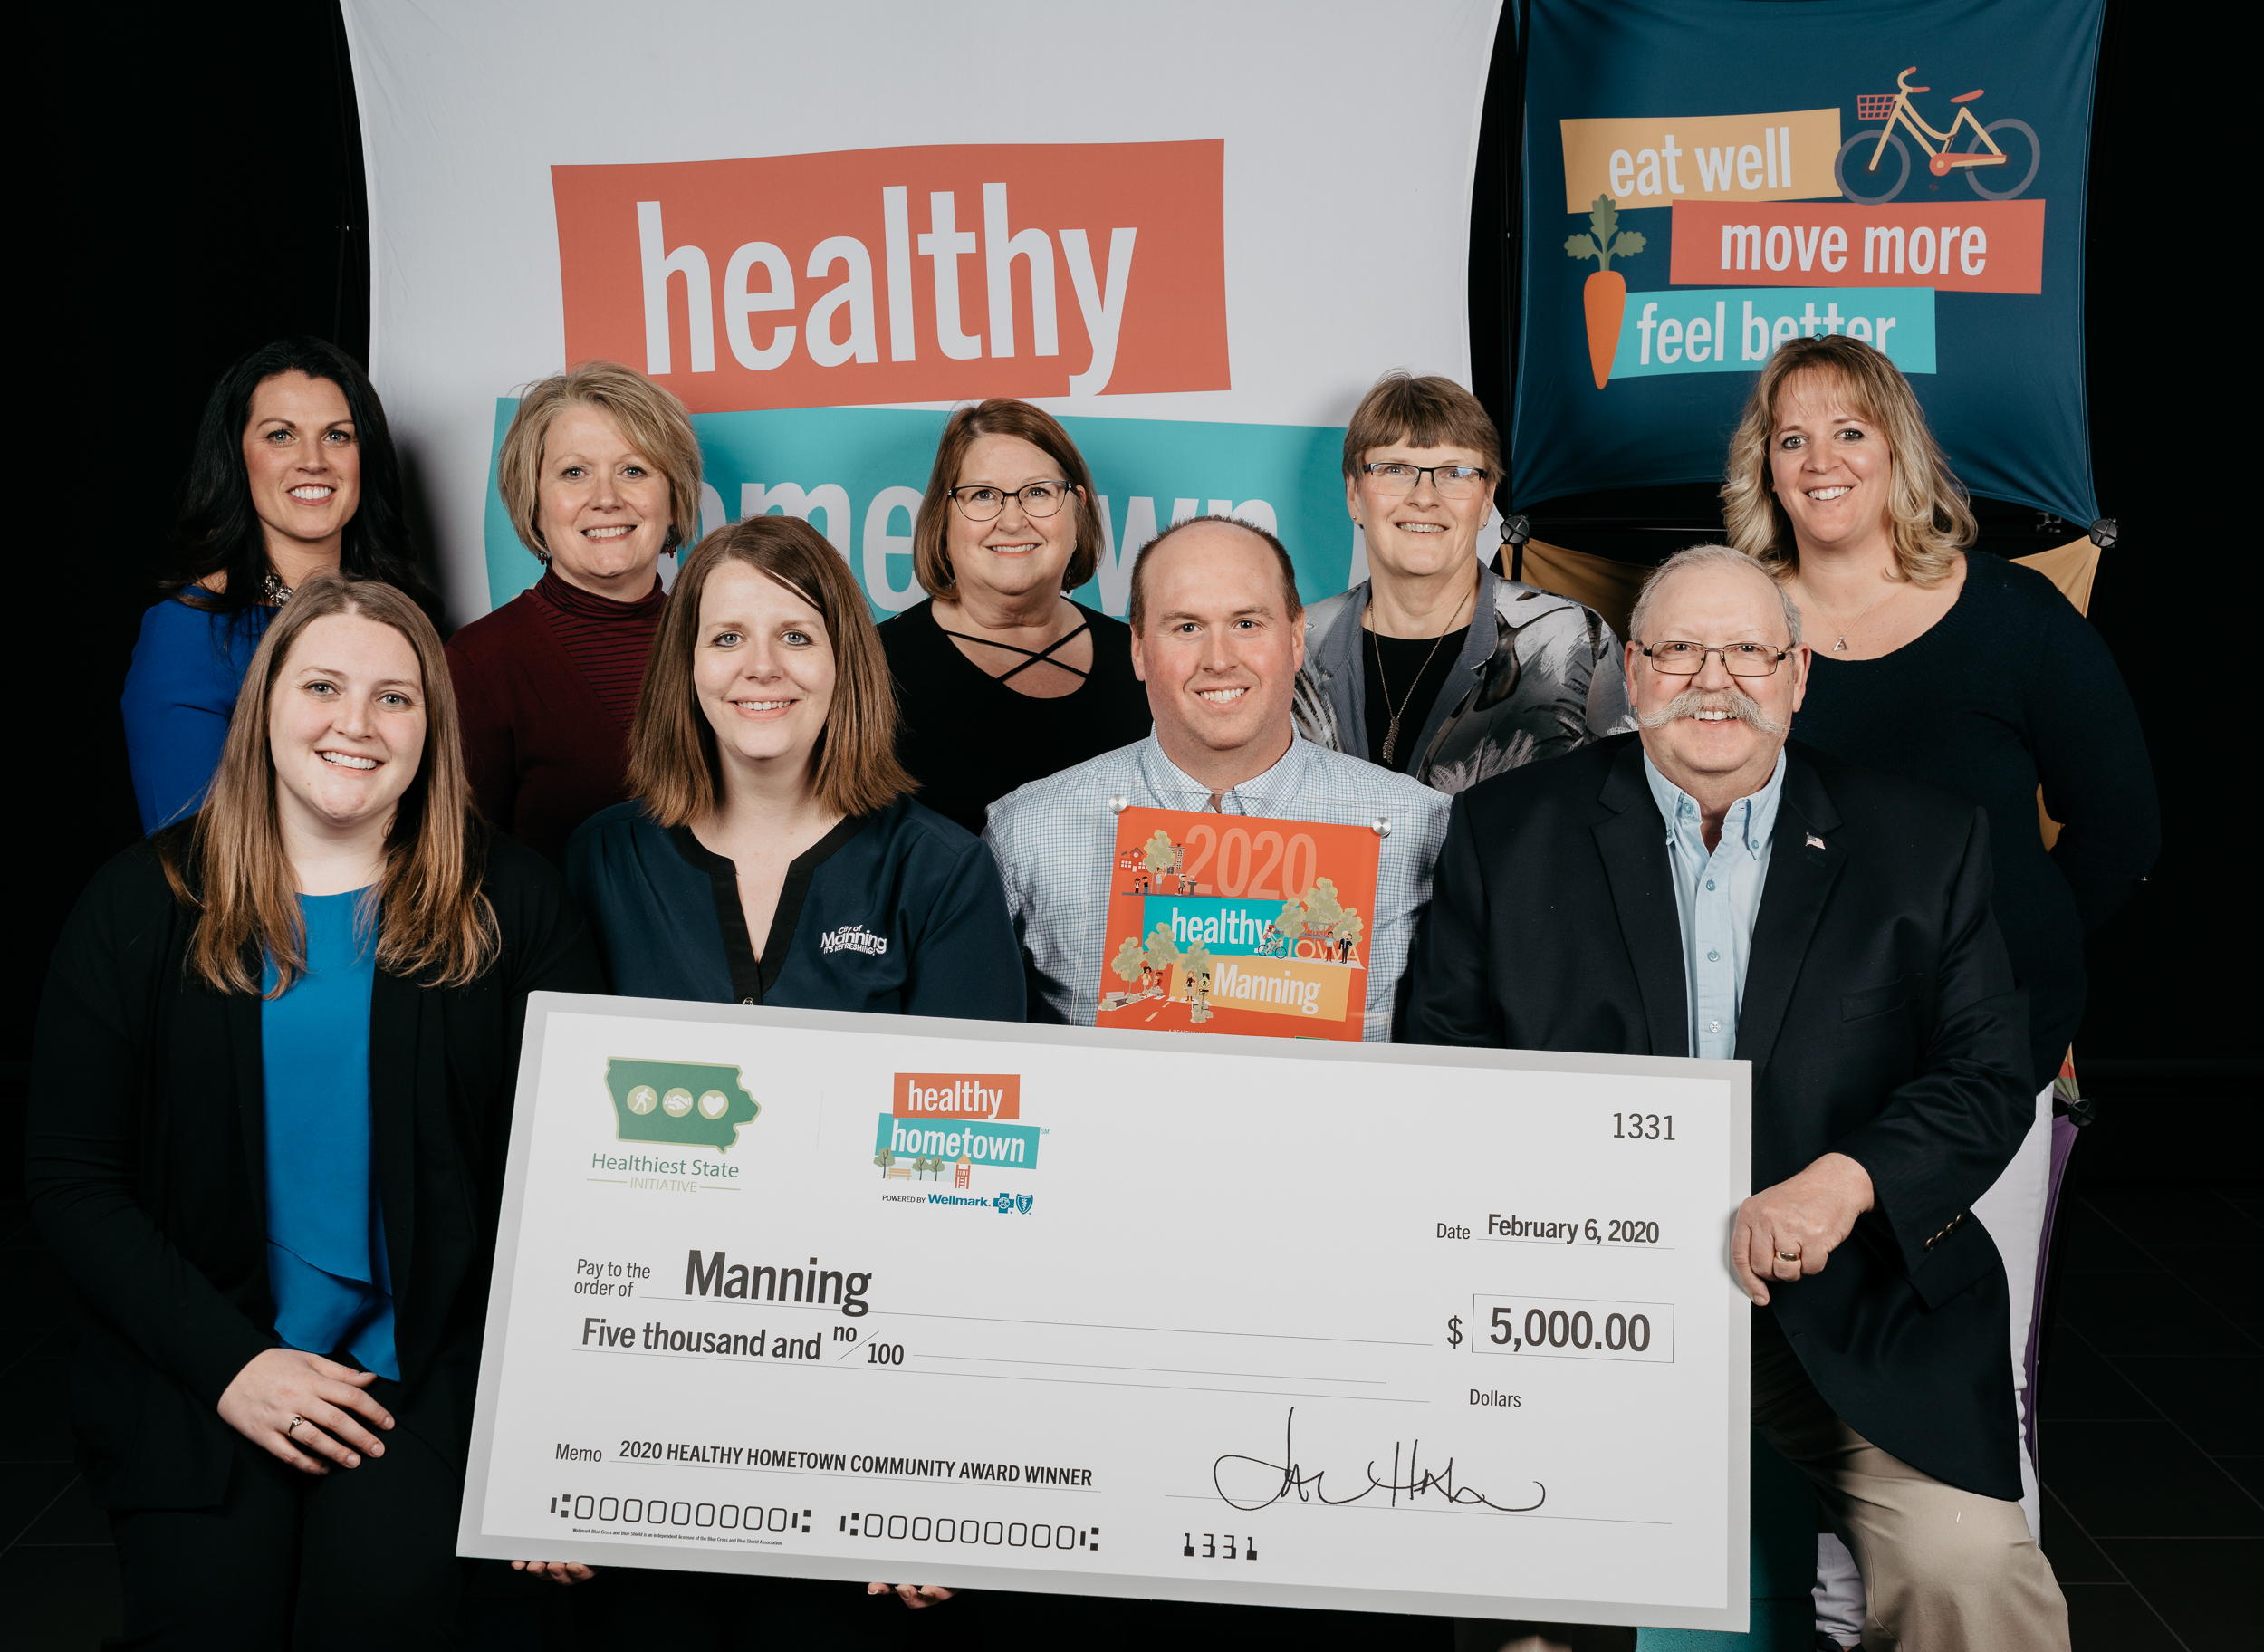 2020 Healthiest State Annual Award winners announced